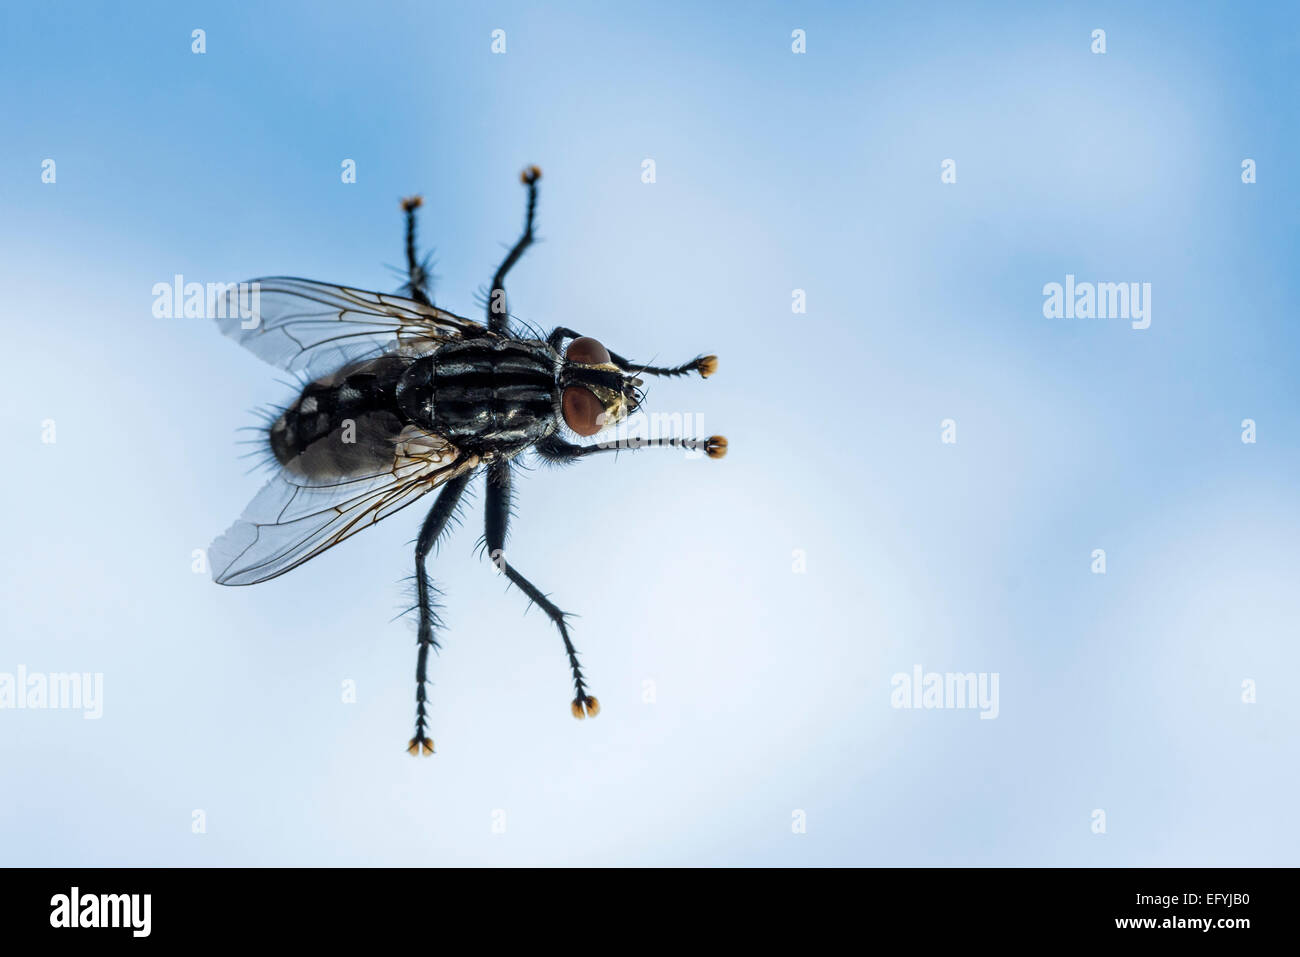 Close-up of a common housefly against a blue background - Stock Image